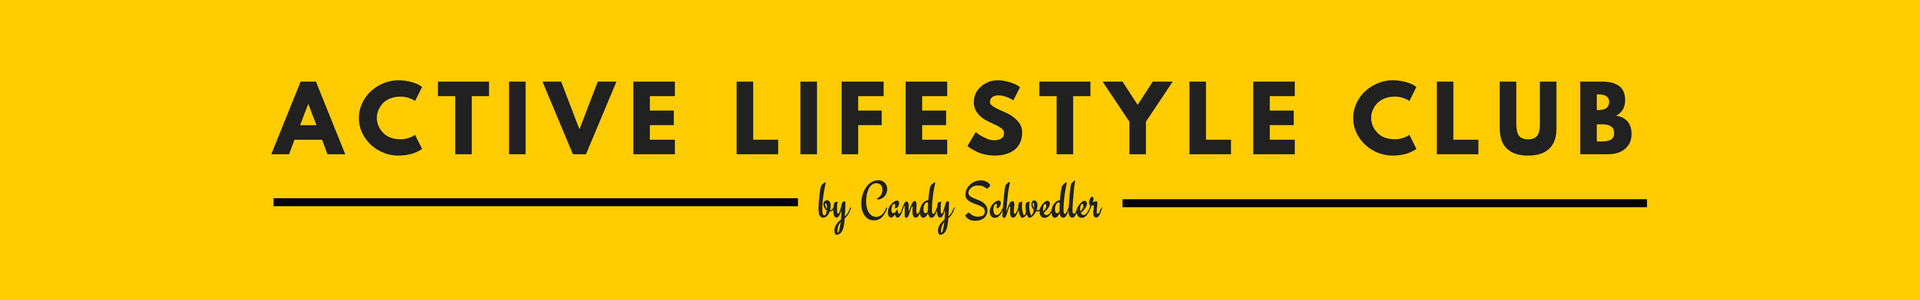 ACTIVE LIFESTYLE CLUB by Candy Schwedler